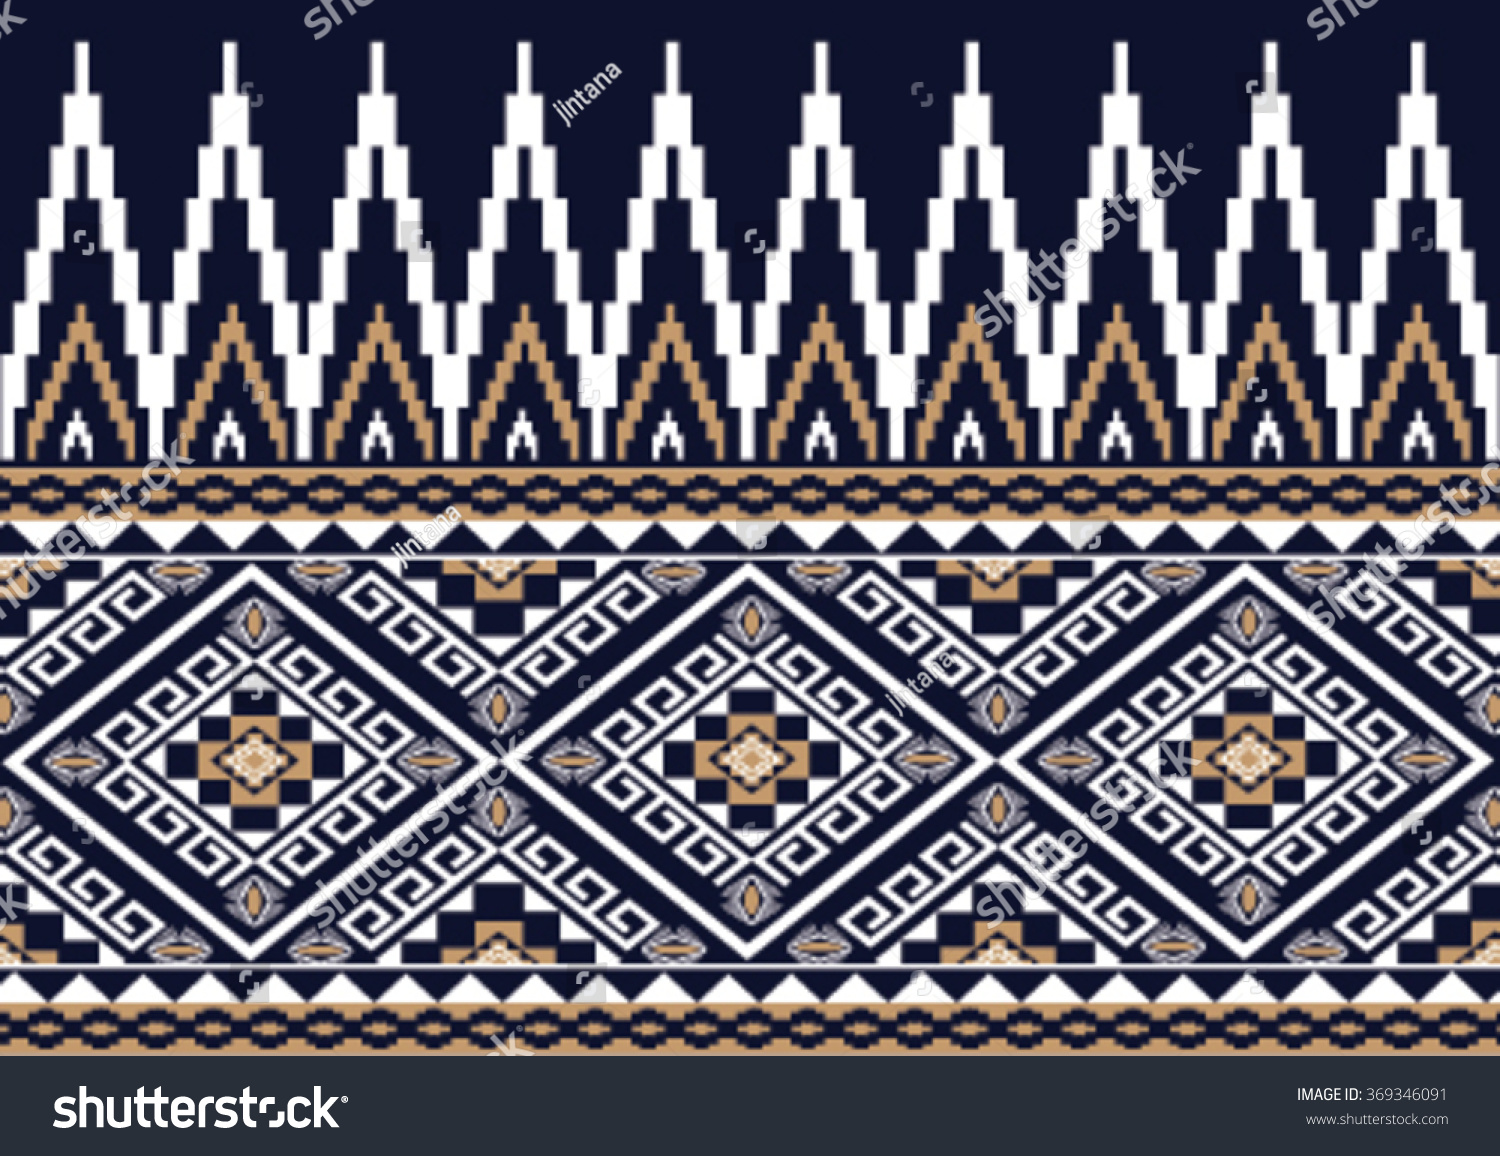 Geometric ethnic pattern embroidery design background